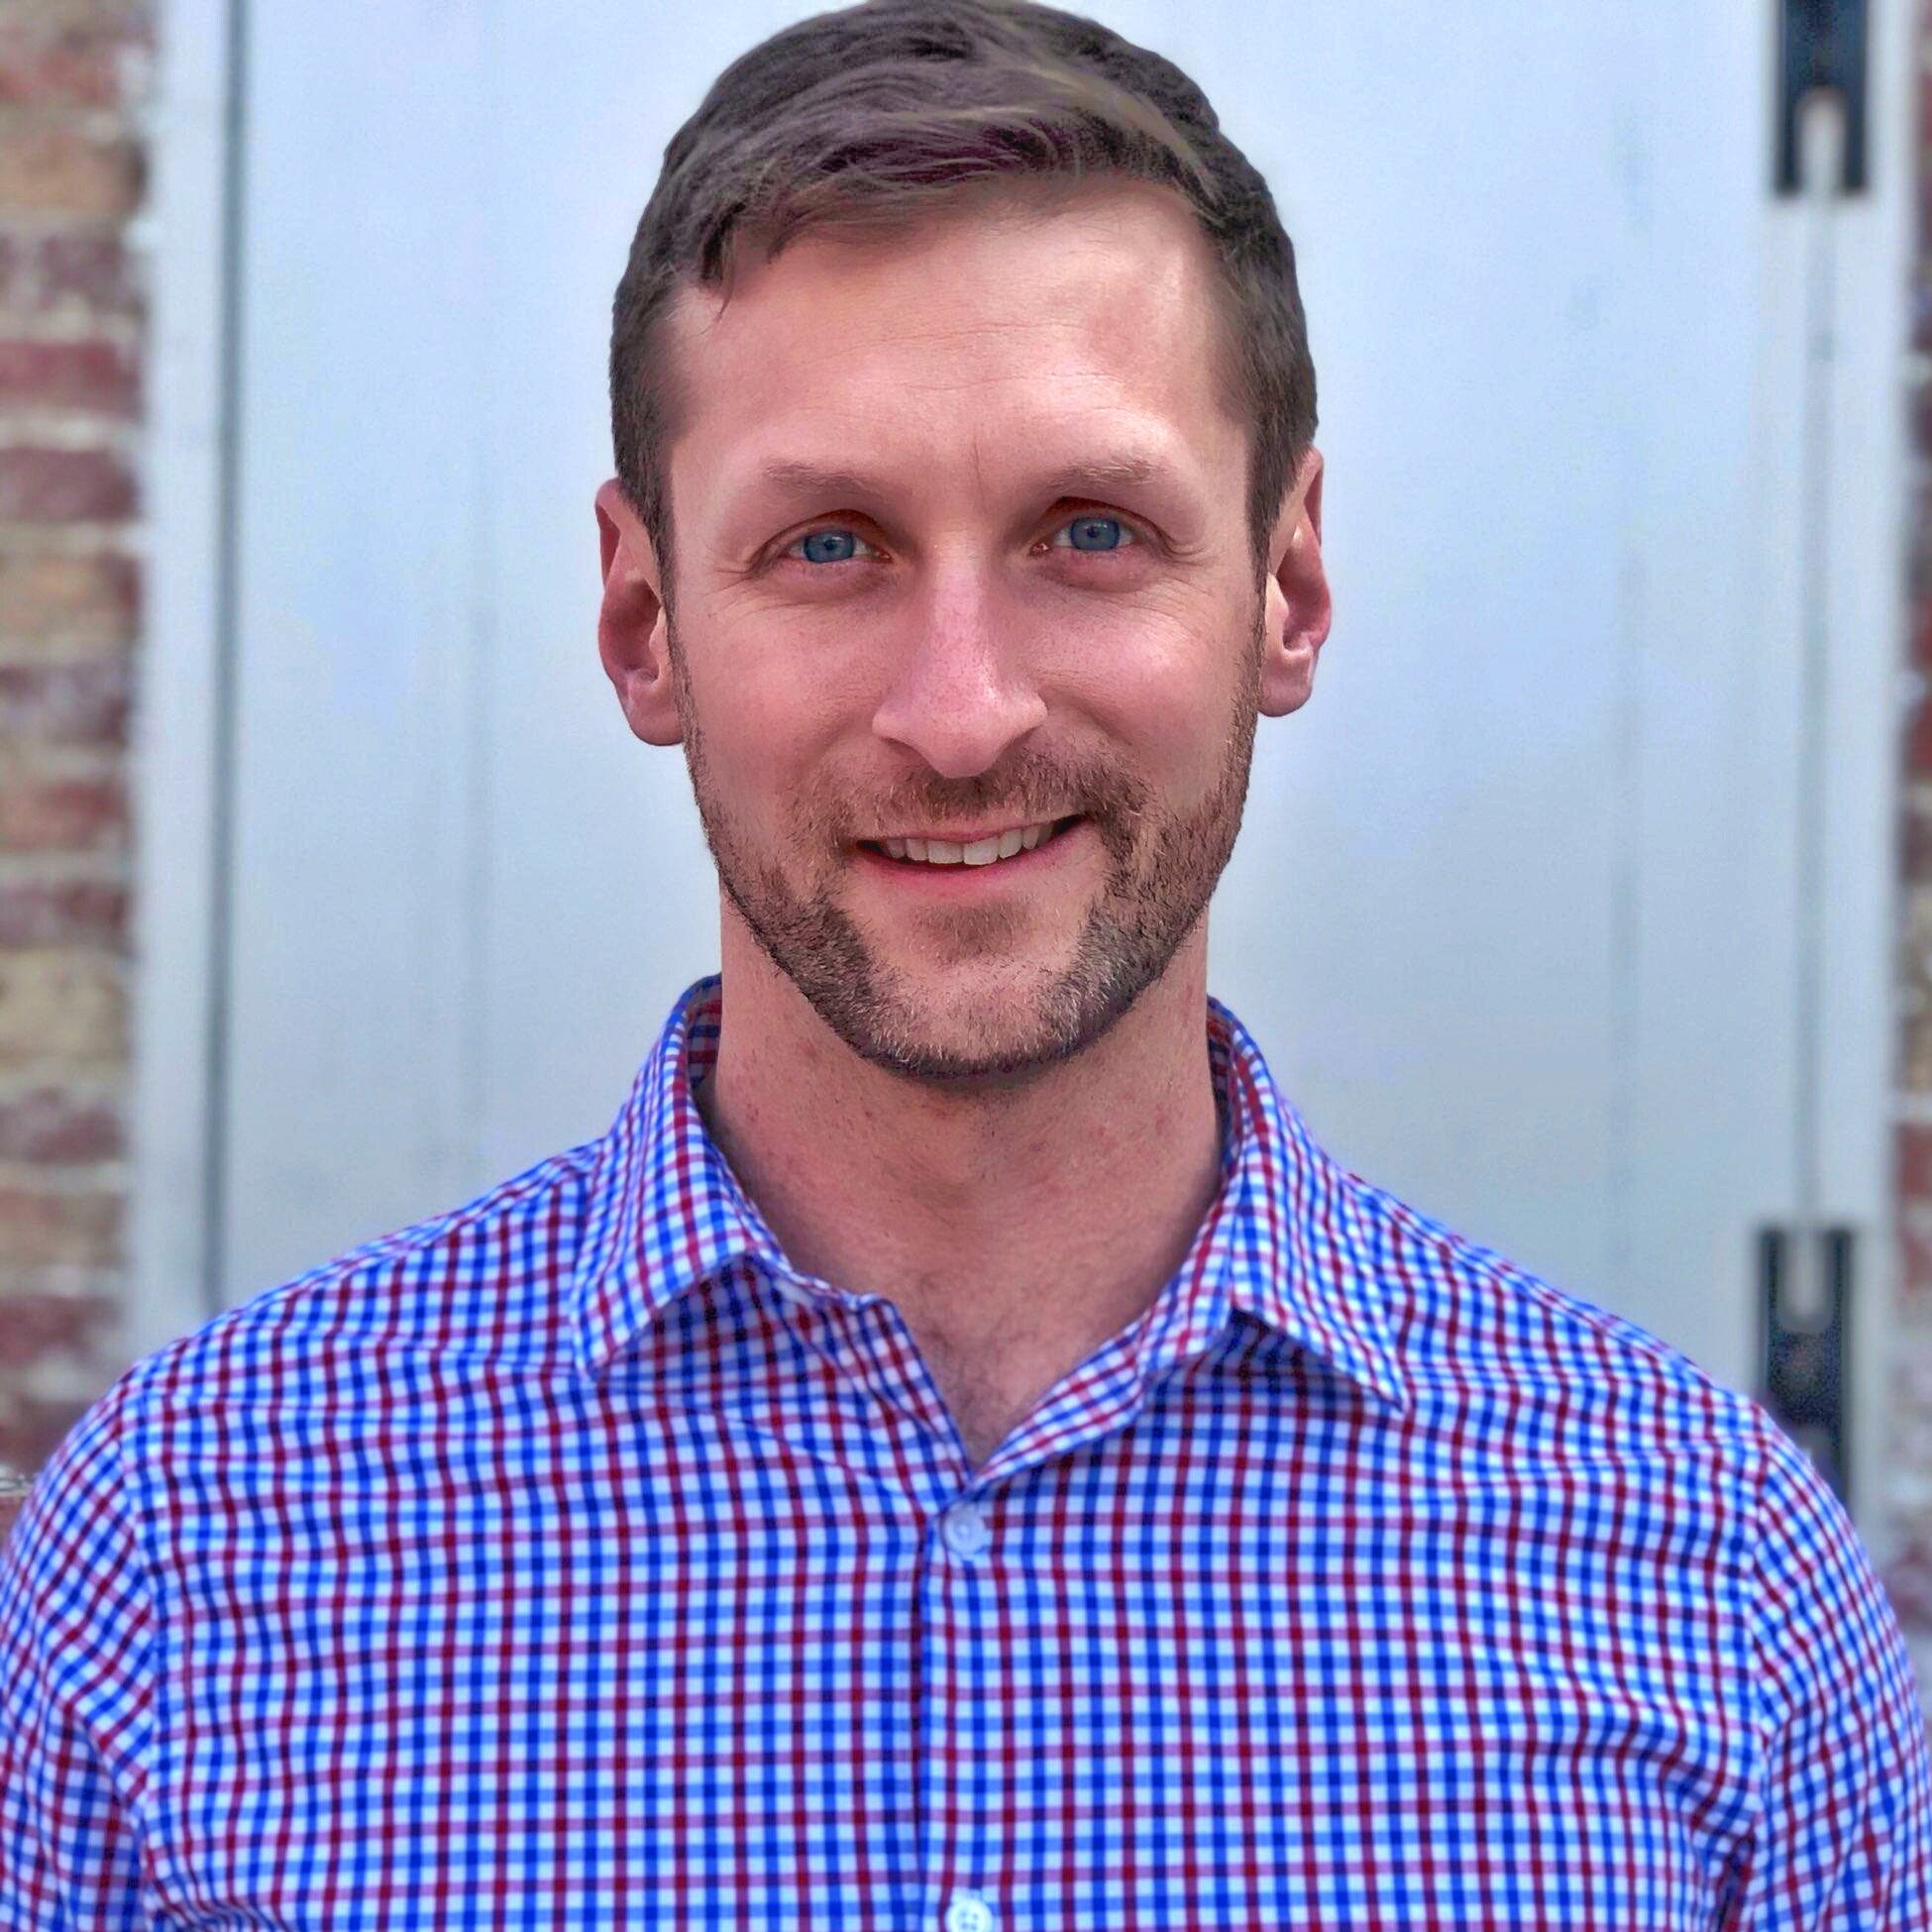 Meet Ty - I am a proud Saltonstall parent, loving husband to Micah, US Army veteran and tech professional.Learn More >